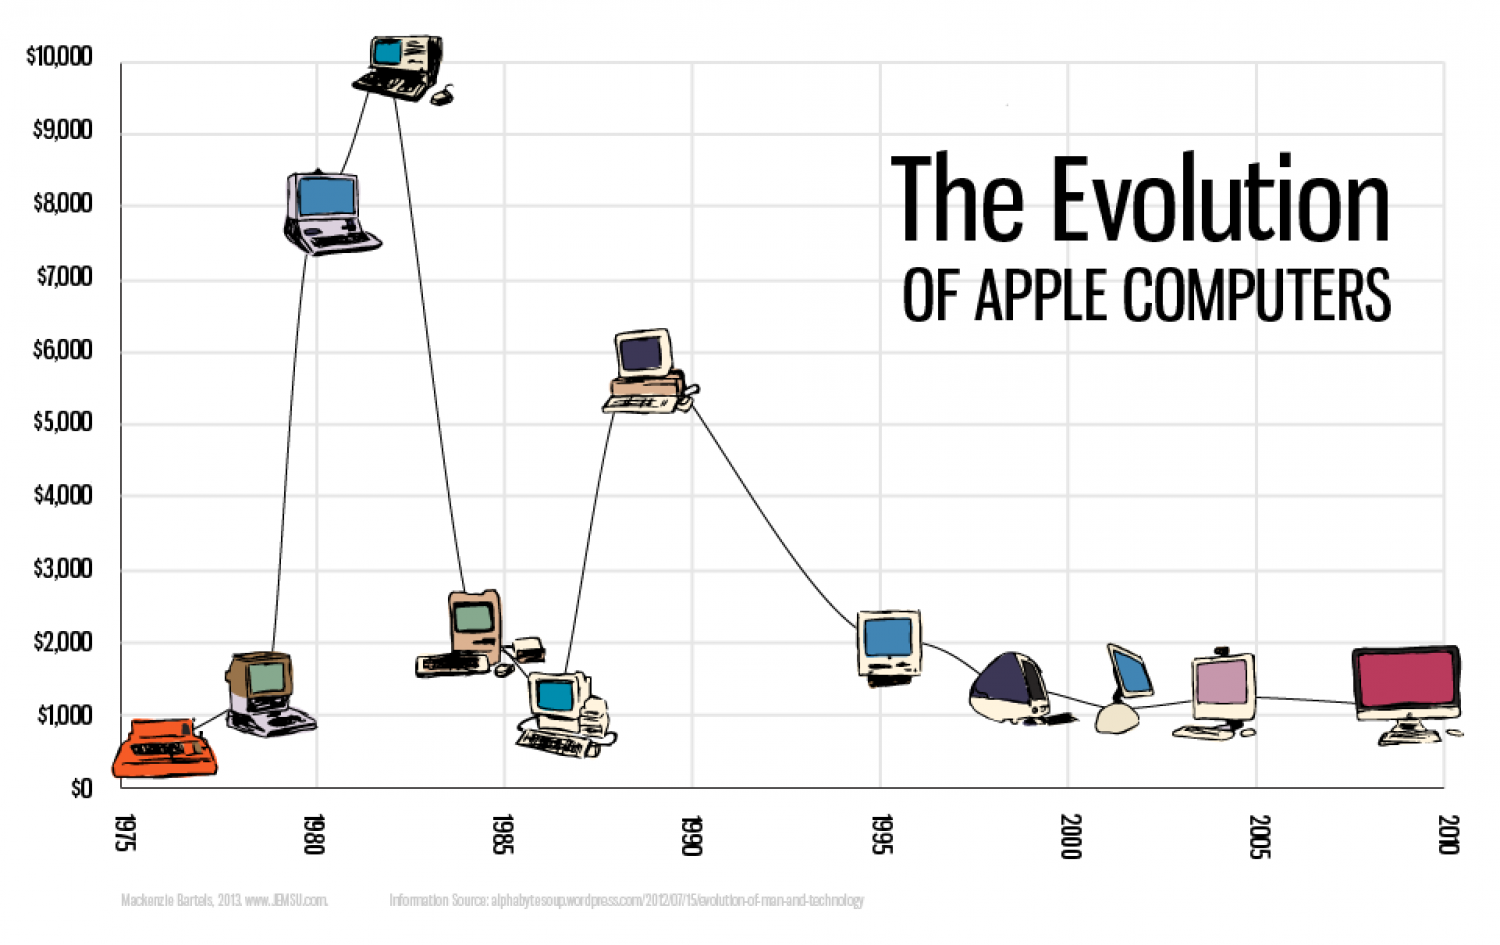 The Evolution of Apple Computers Infographic